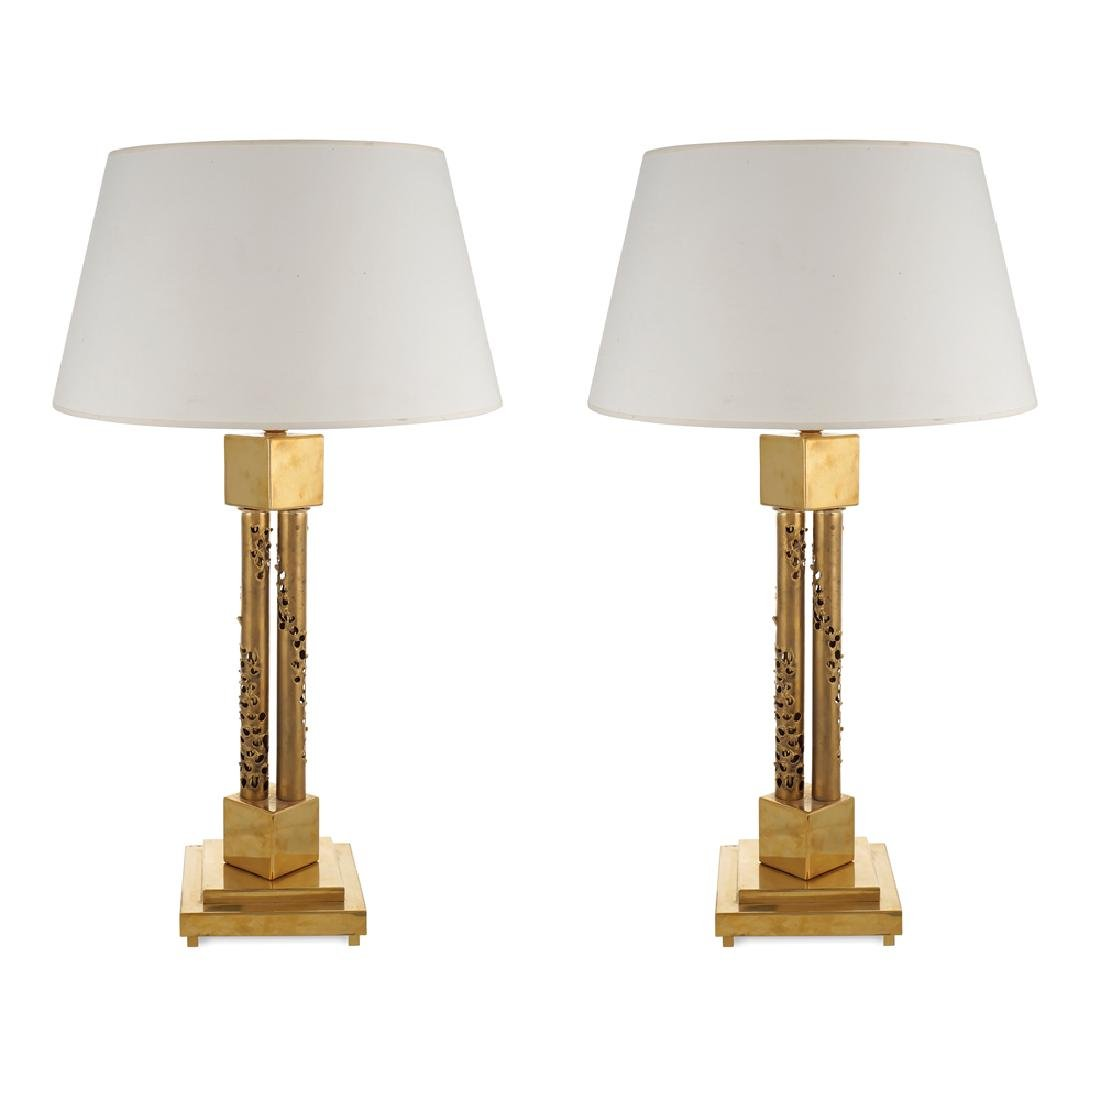 Pair of table lamps France 20th century h. 80 cm.